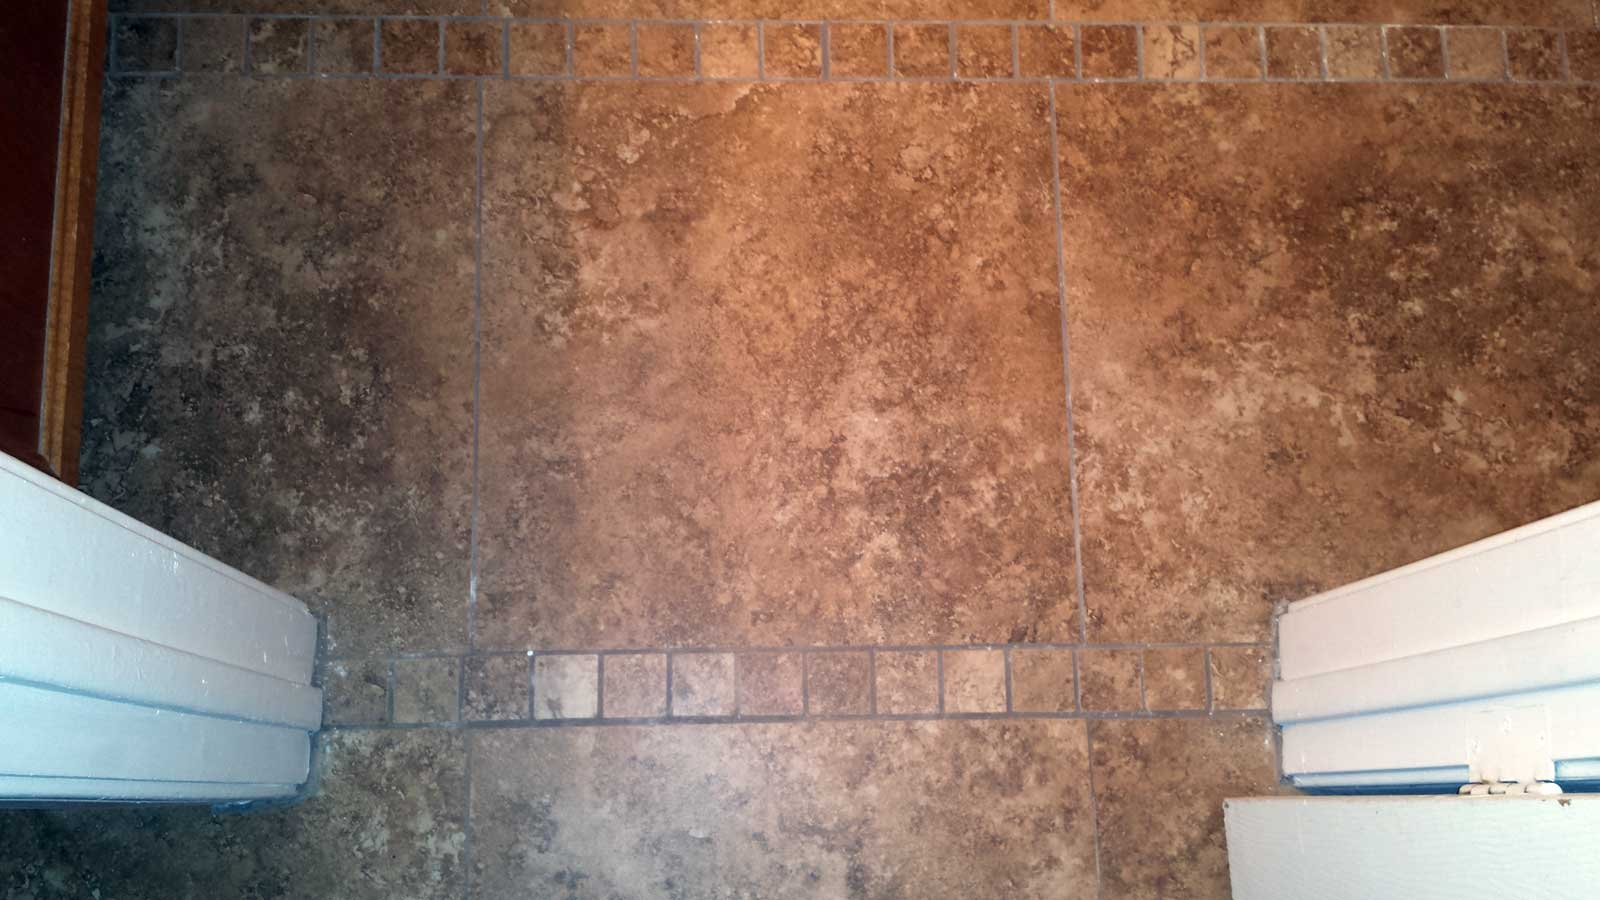 Repairing ceramic floor tile